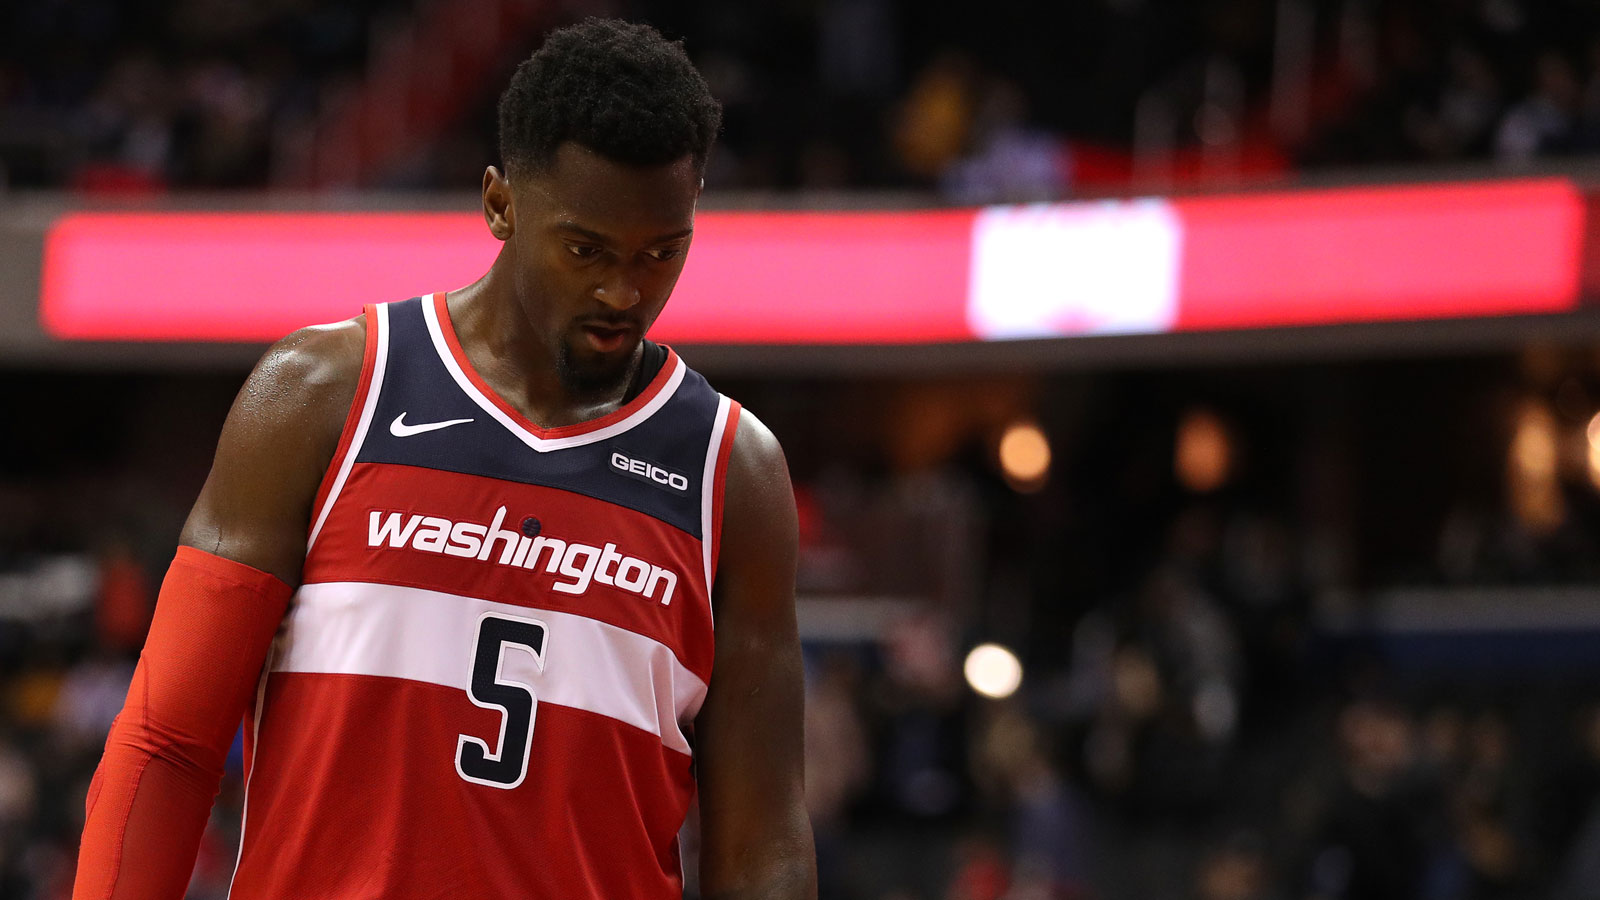 Bobby Portis #5 of the Washington Wizards looks on against the San Antonio Spurs during the second half at Capital One Arena on April 05, 2019 in Washington, DC.